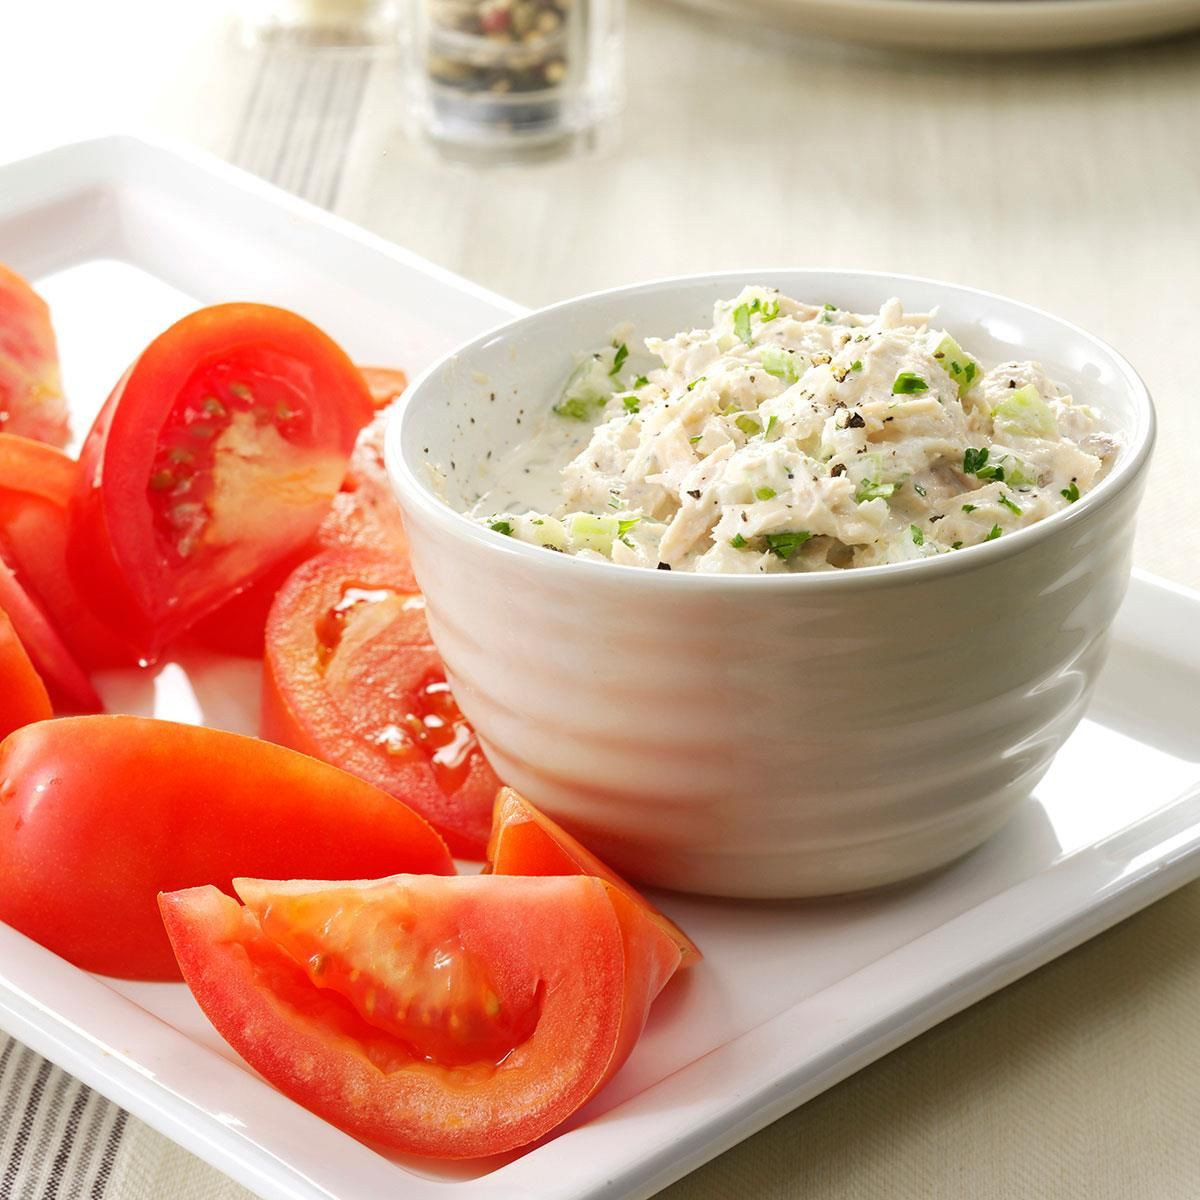 Crunchy Tuna Salad with Tomatoes Recipe -On a hot summer day, there's nothing more refreshing than one of these. I grow a few tomato plants in my garden and the fresh-picked taste makes the recipe even more of a treat. —Diane Selich, Vassar, Michigan